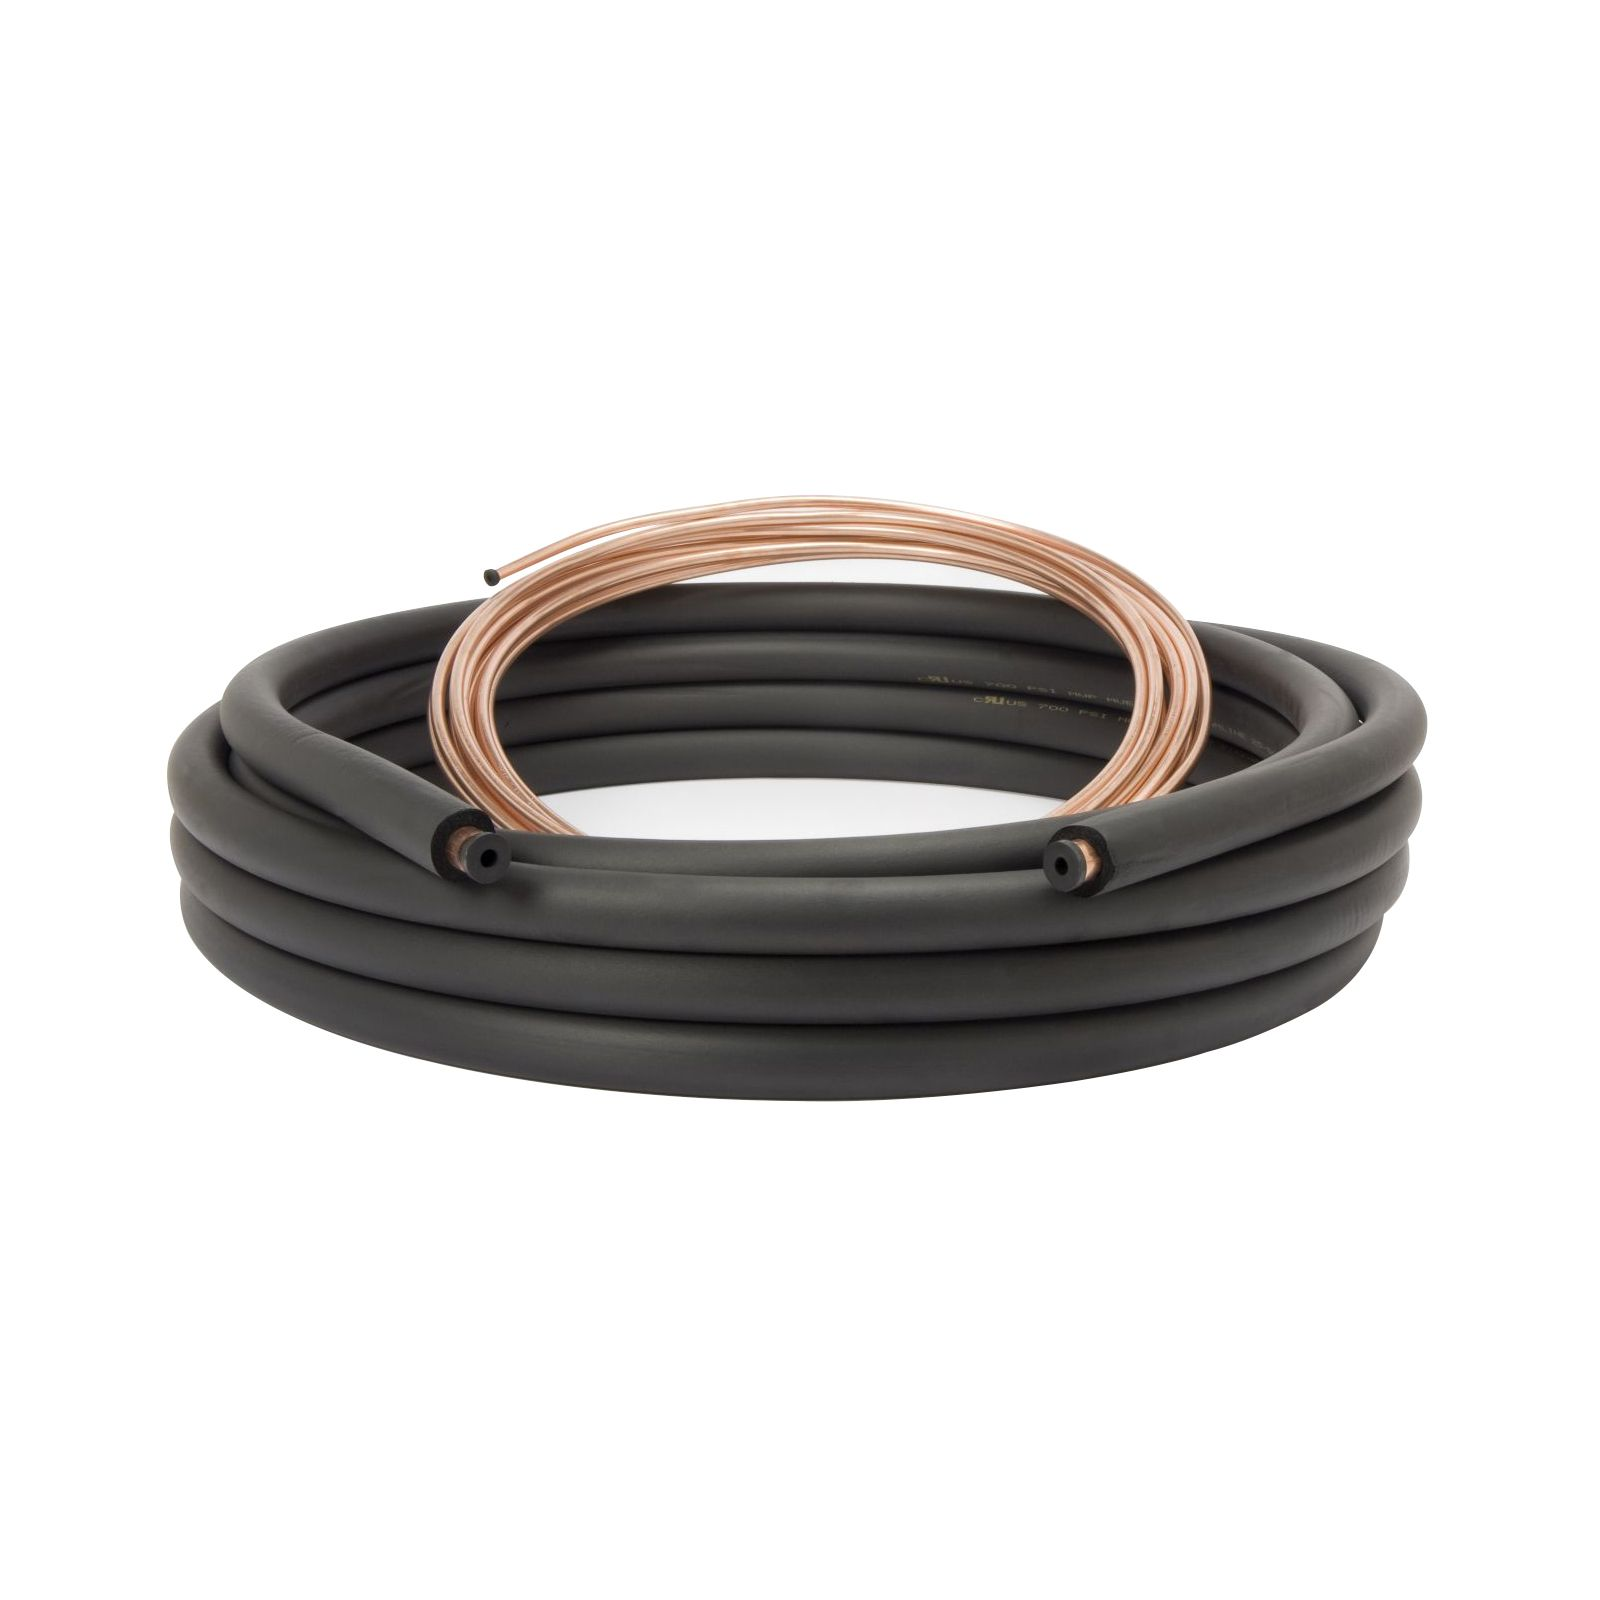 "Streamline 51280200 - Copper Line Set 5/16"" x 3/4"" x 3/8"" Insulation, 20' Length I.D."